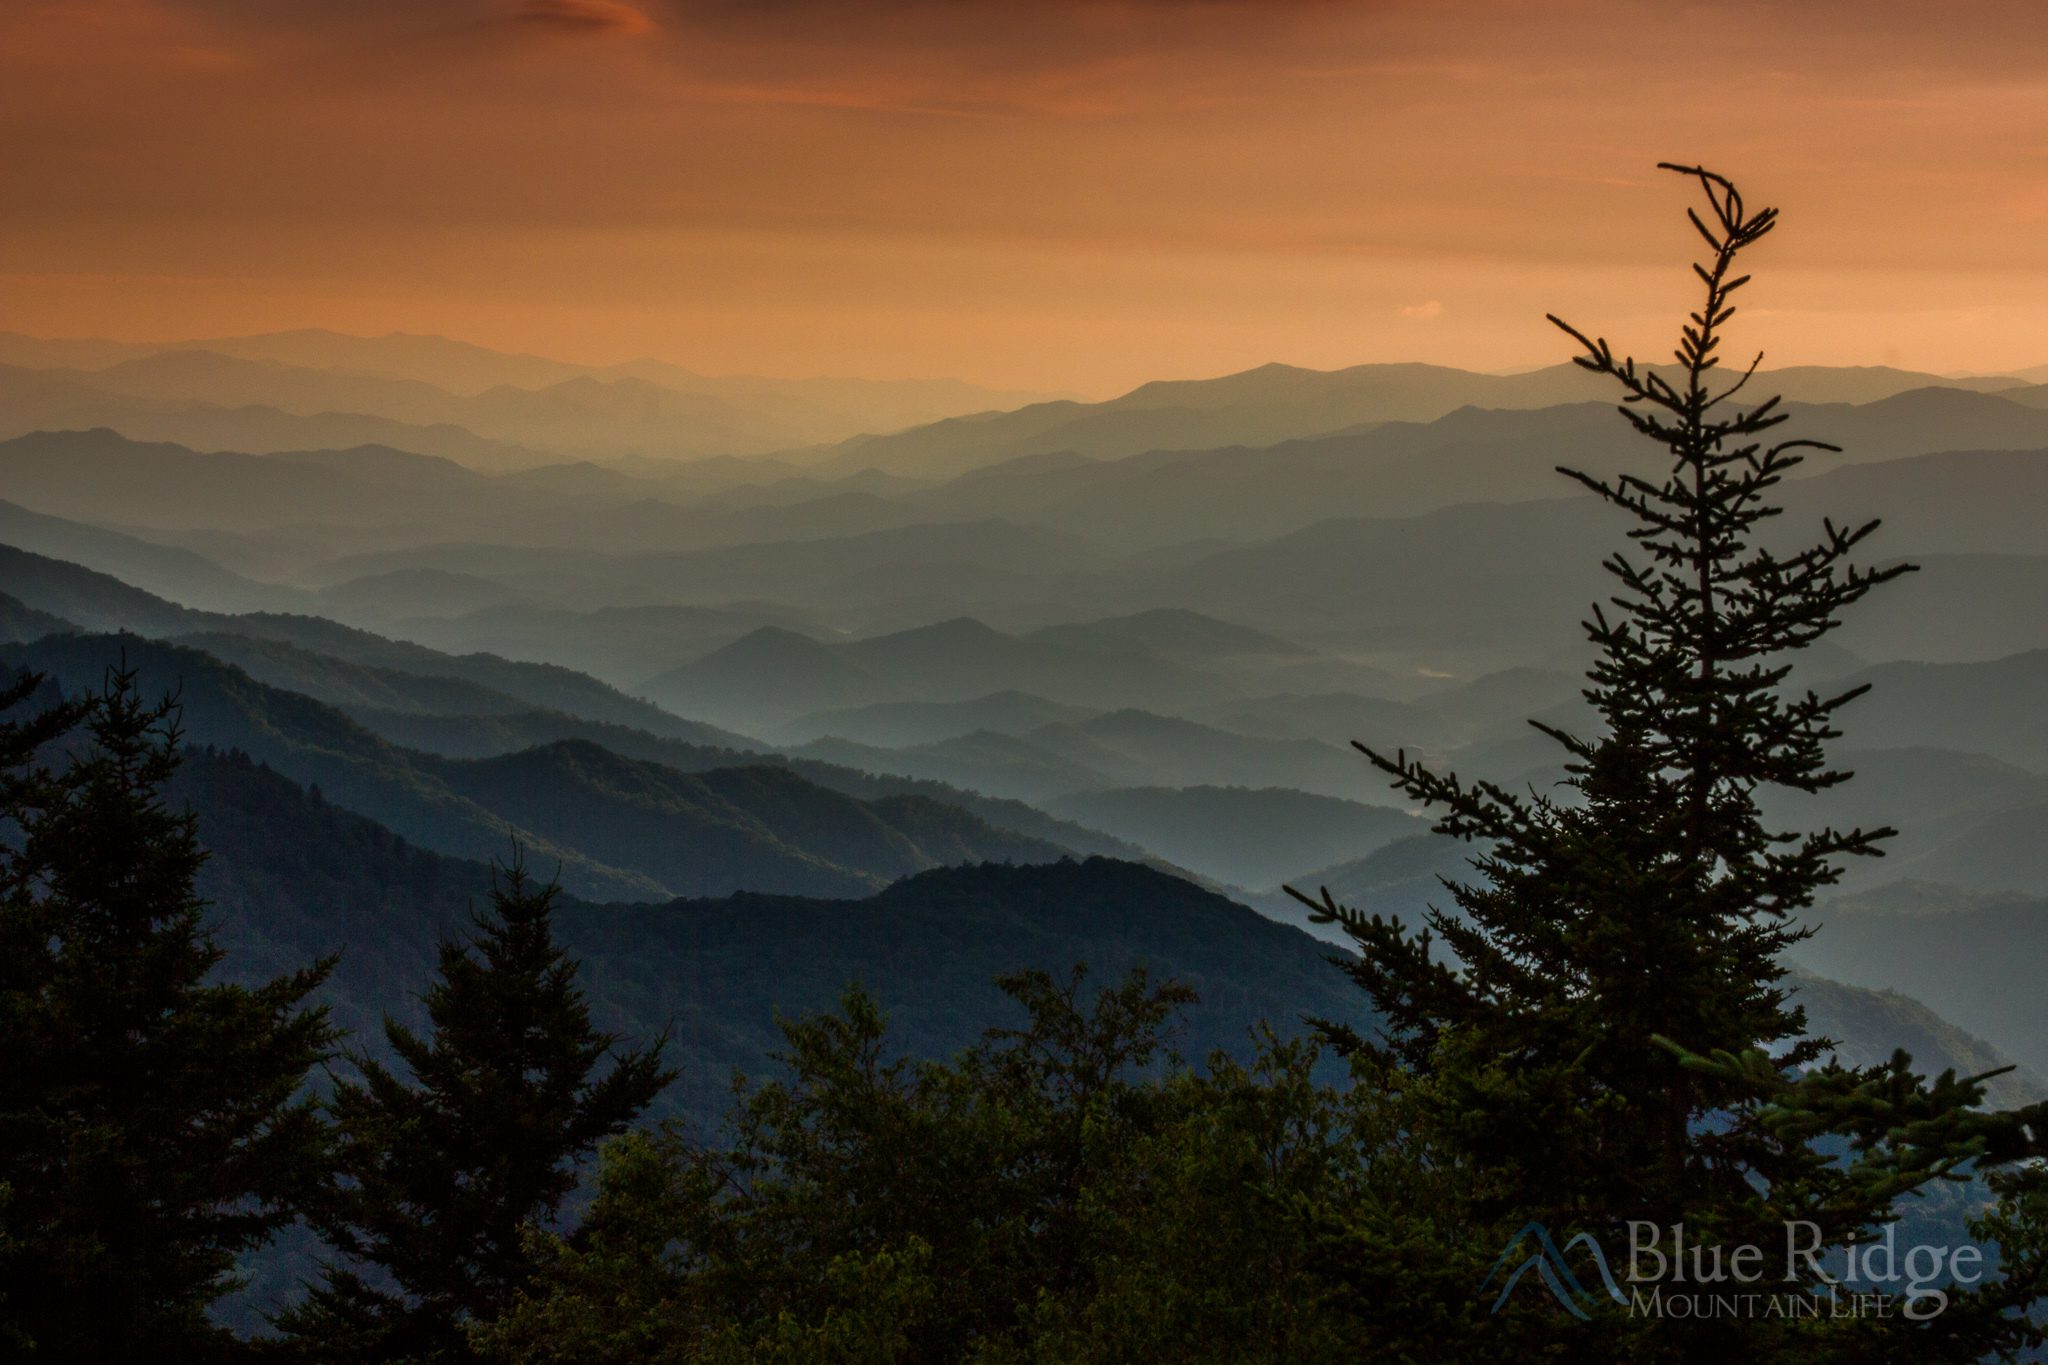 Sunset at Waterrock Knob on the Blue Ridge Parkway